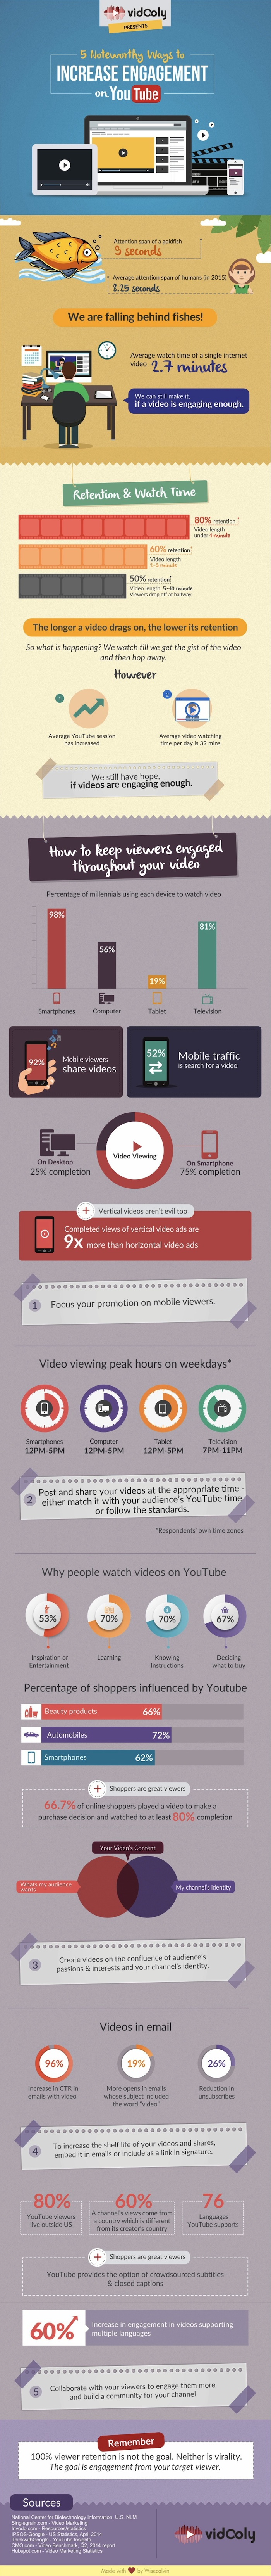 wersm-infographic-youtube-tips-for-more-engagement